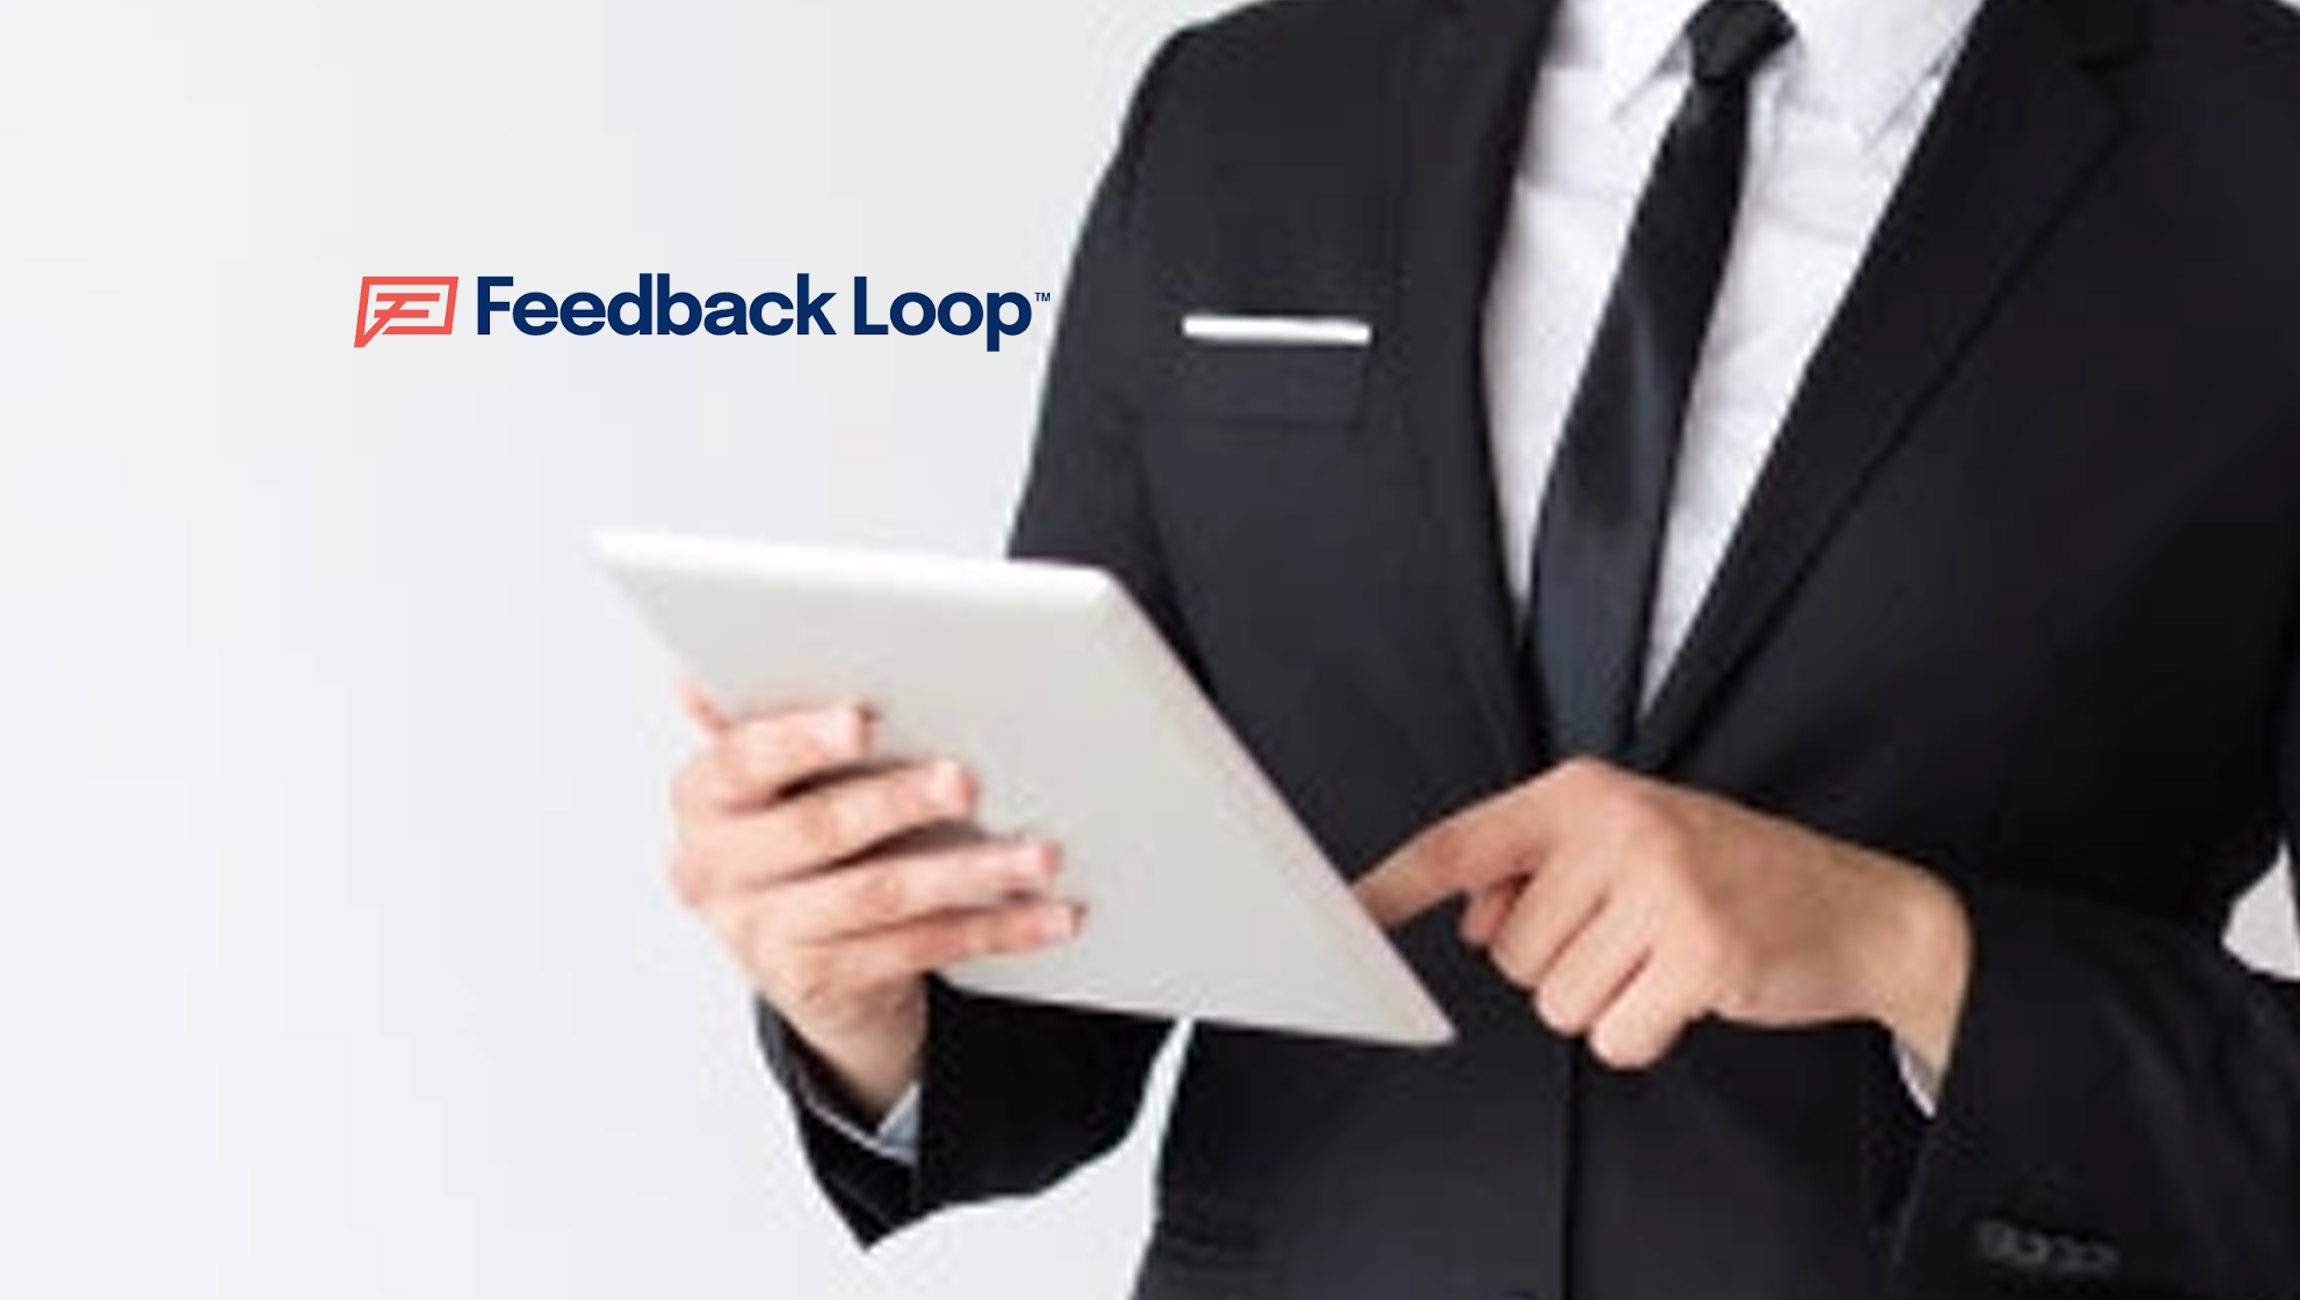 New Insights from Feedback Loop Reveal More Brands Are Relying on Consumers to Make Critical Product Decisions